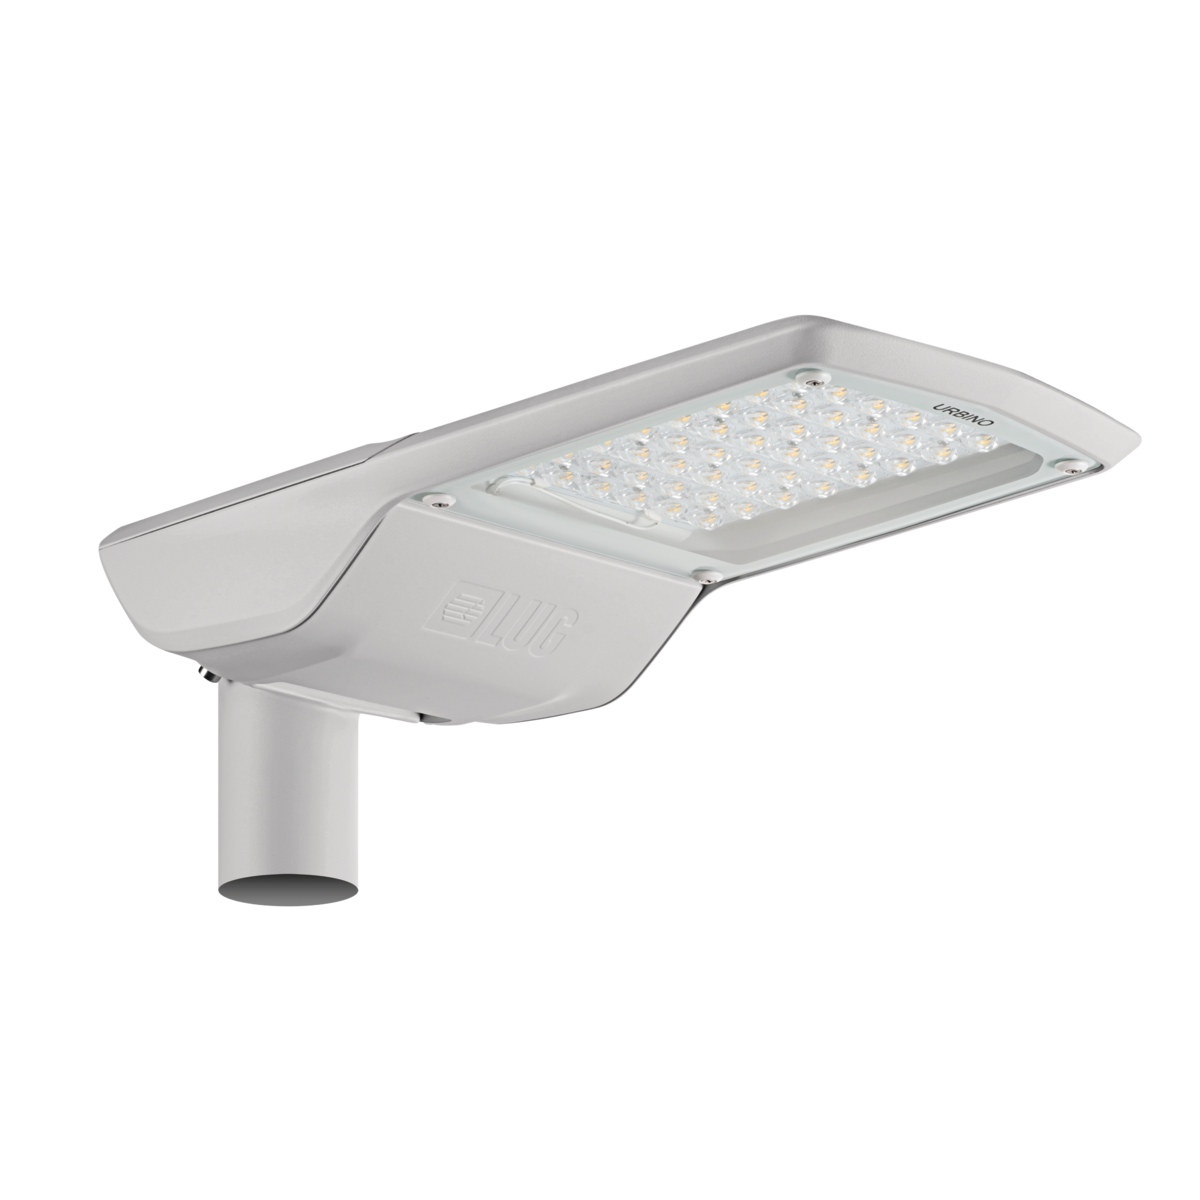 URBINO LED - Professional streetlight LED luminaire - LUG on